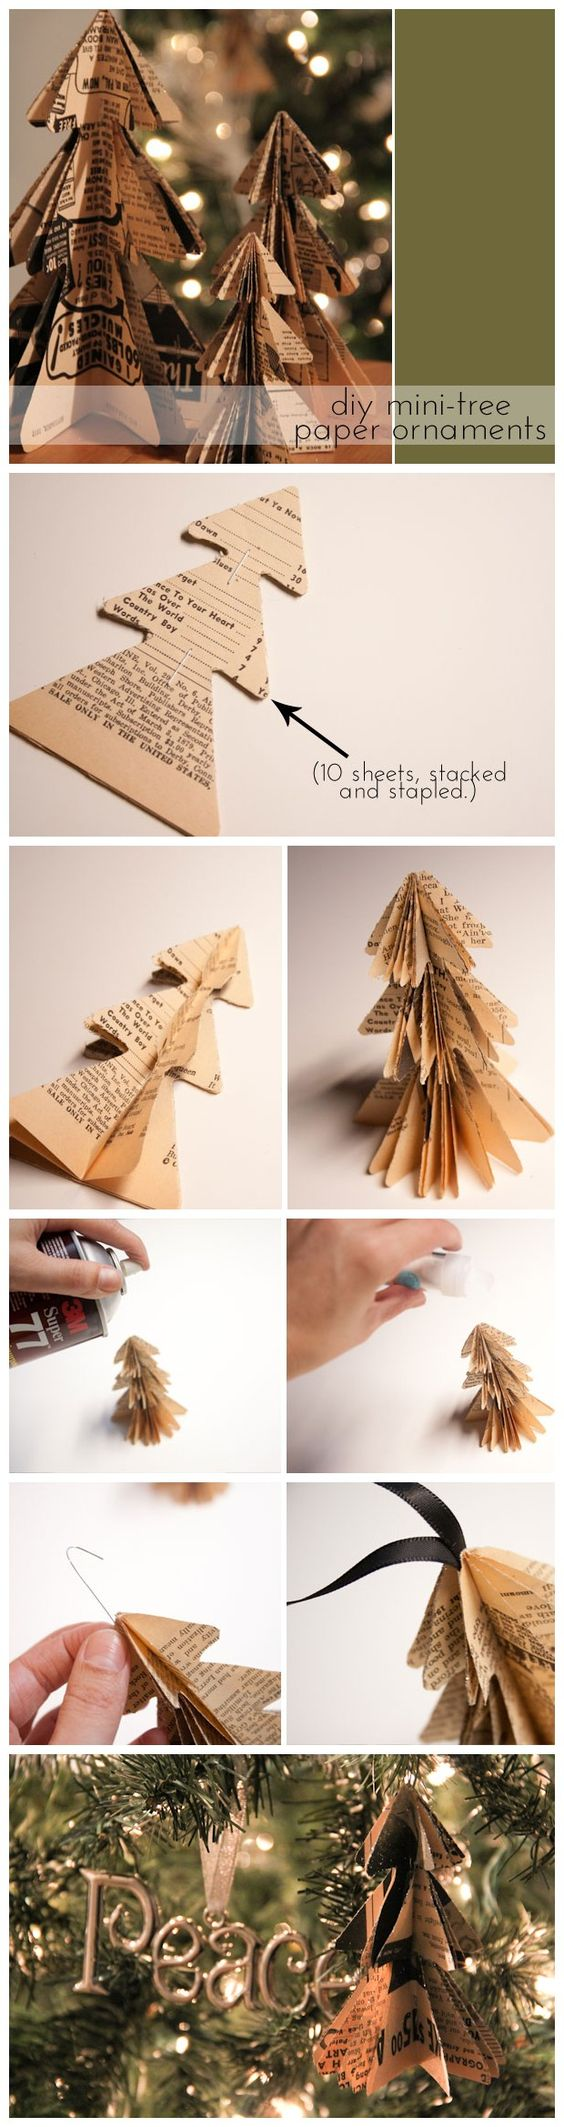 Recycled books, paper trees and ornaments on pinterest